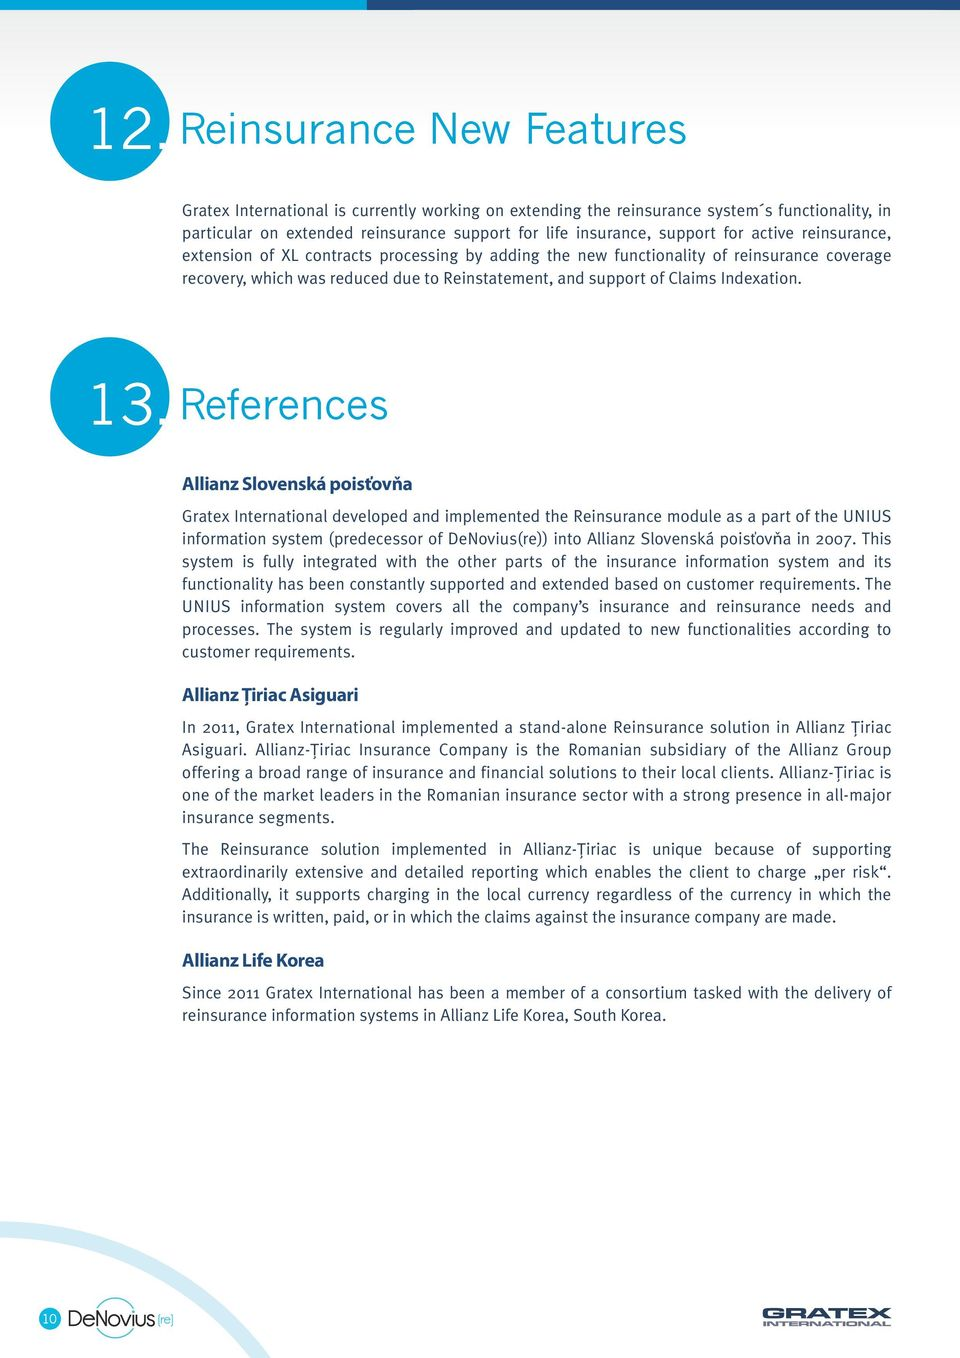 13. References Allianz Slovenská poisťovňa Gratex International developed and implemented the Reinsurance module as a part of the UNIUS information system (predecessor of DeNovius(re)) into Allianz